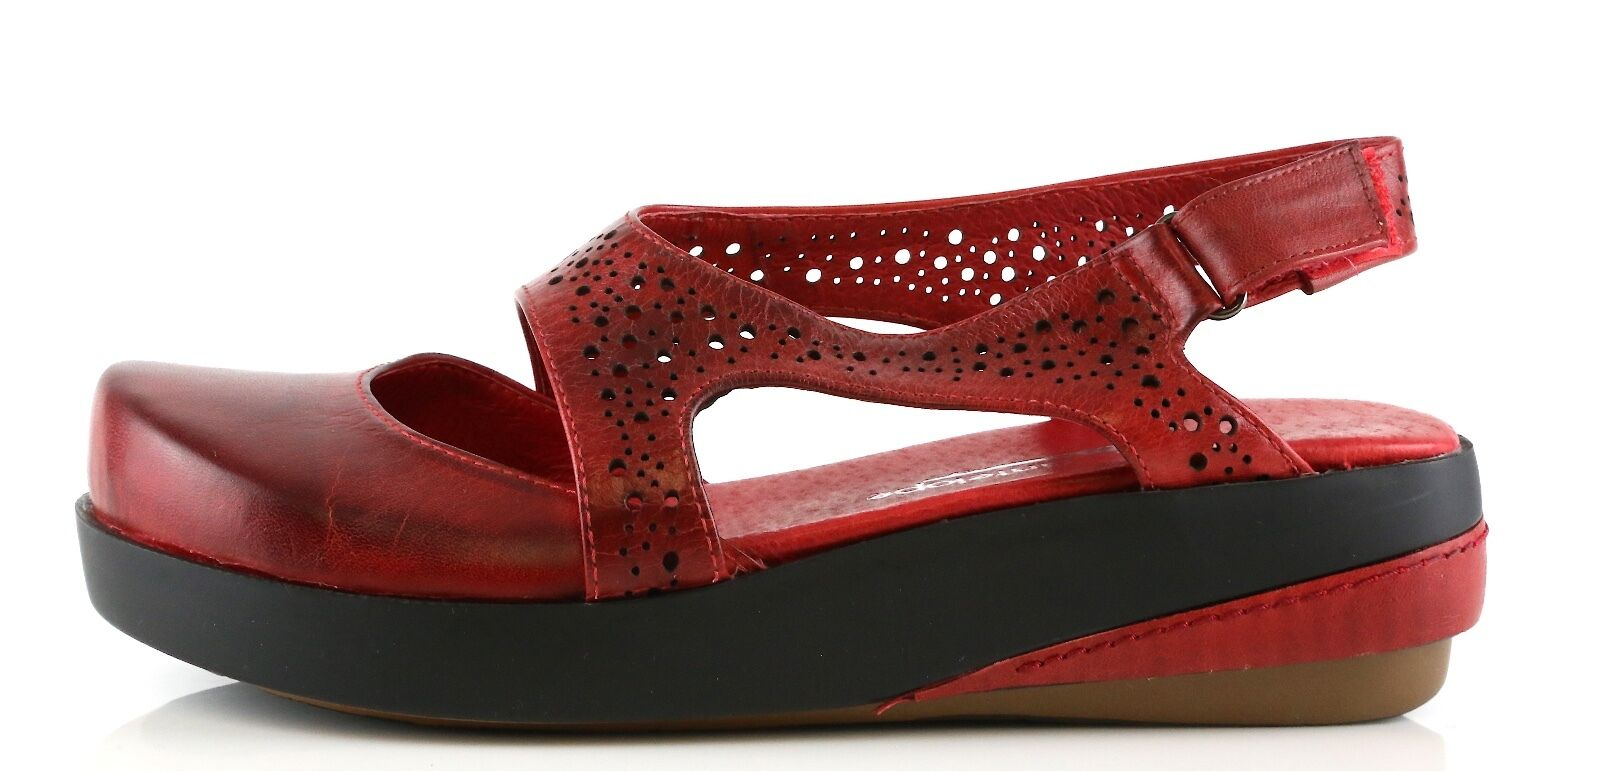 Antelope Woman's Size Red Leather Mary Jane Sandals 8975 Size Woman's 39 EU NEW! 5fec04